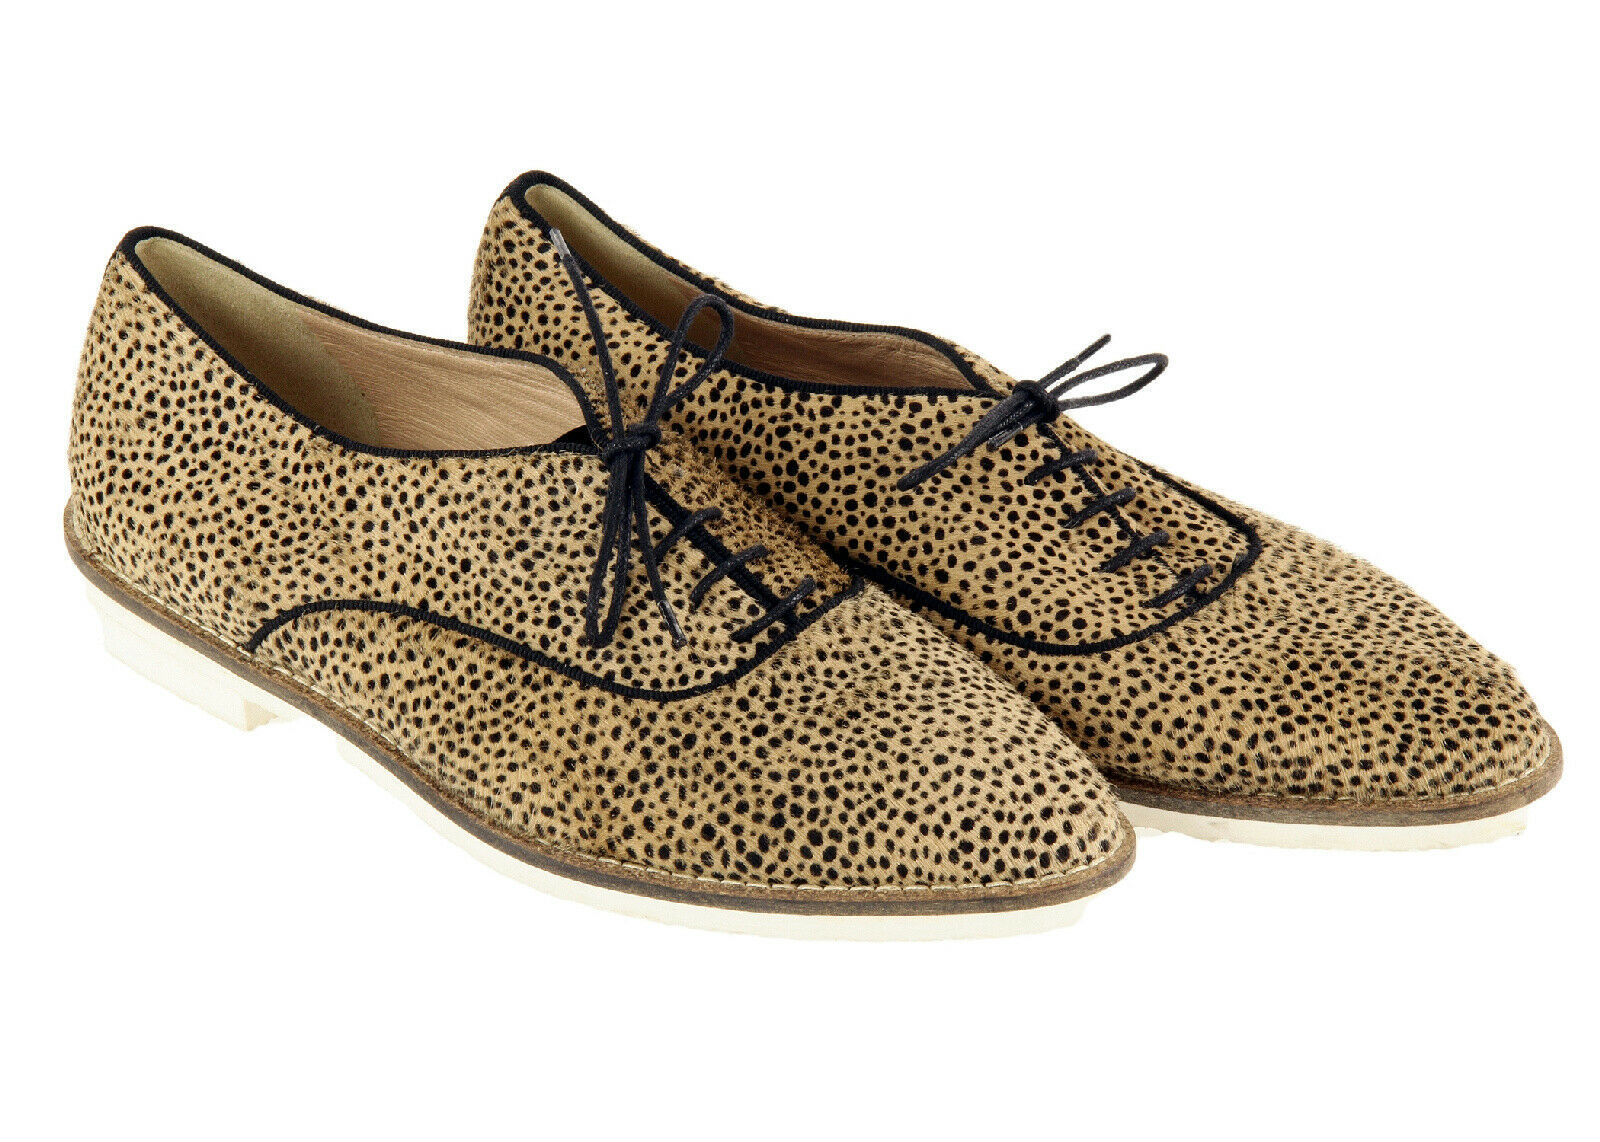 Primary image for J Crew Women's Calf Hair Oxfords In Tan And Black Polka Dot 7 Womens Shoes Flats